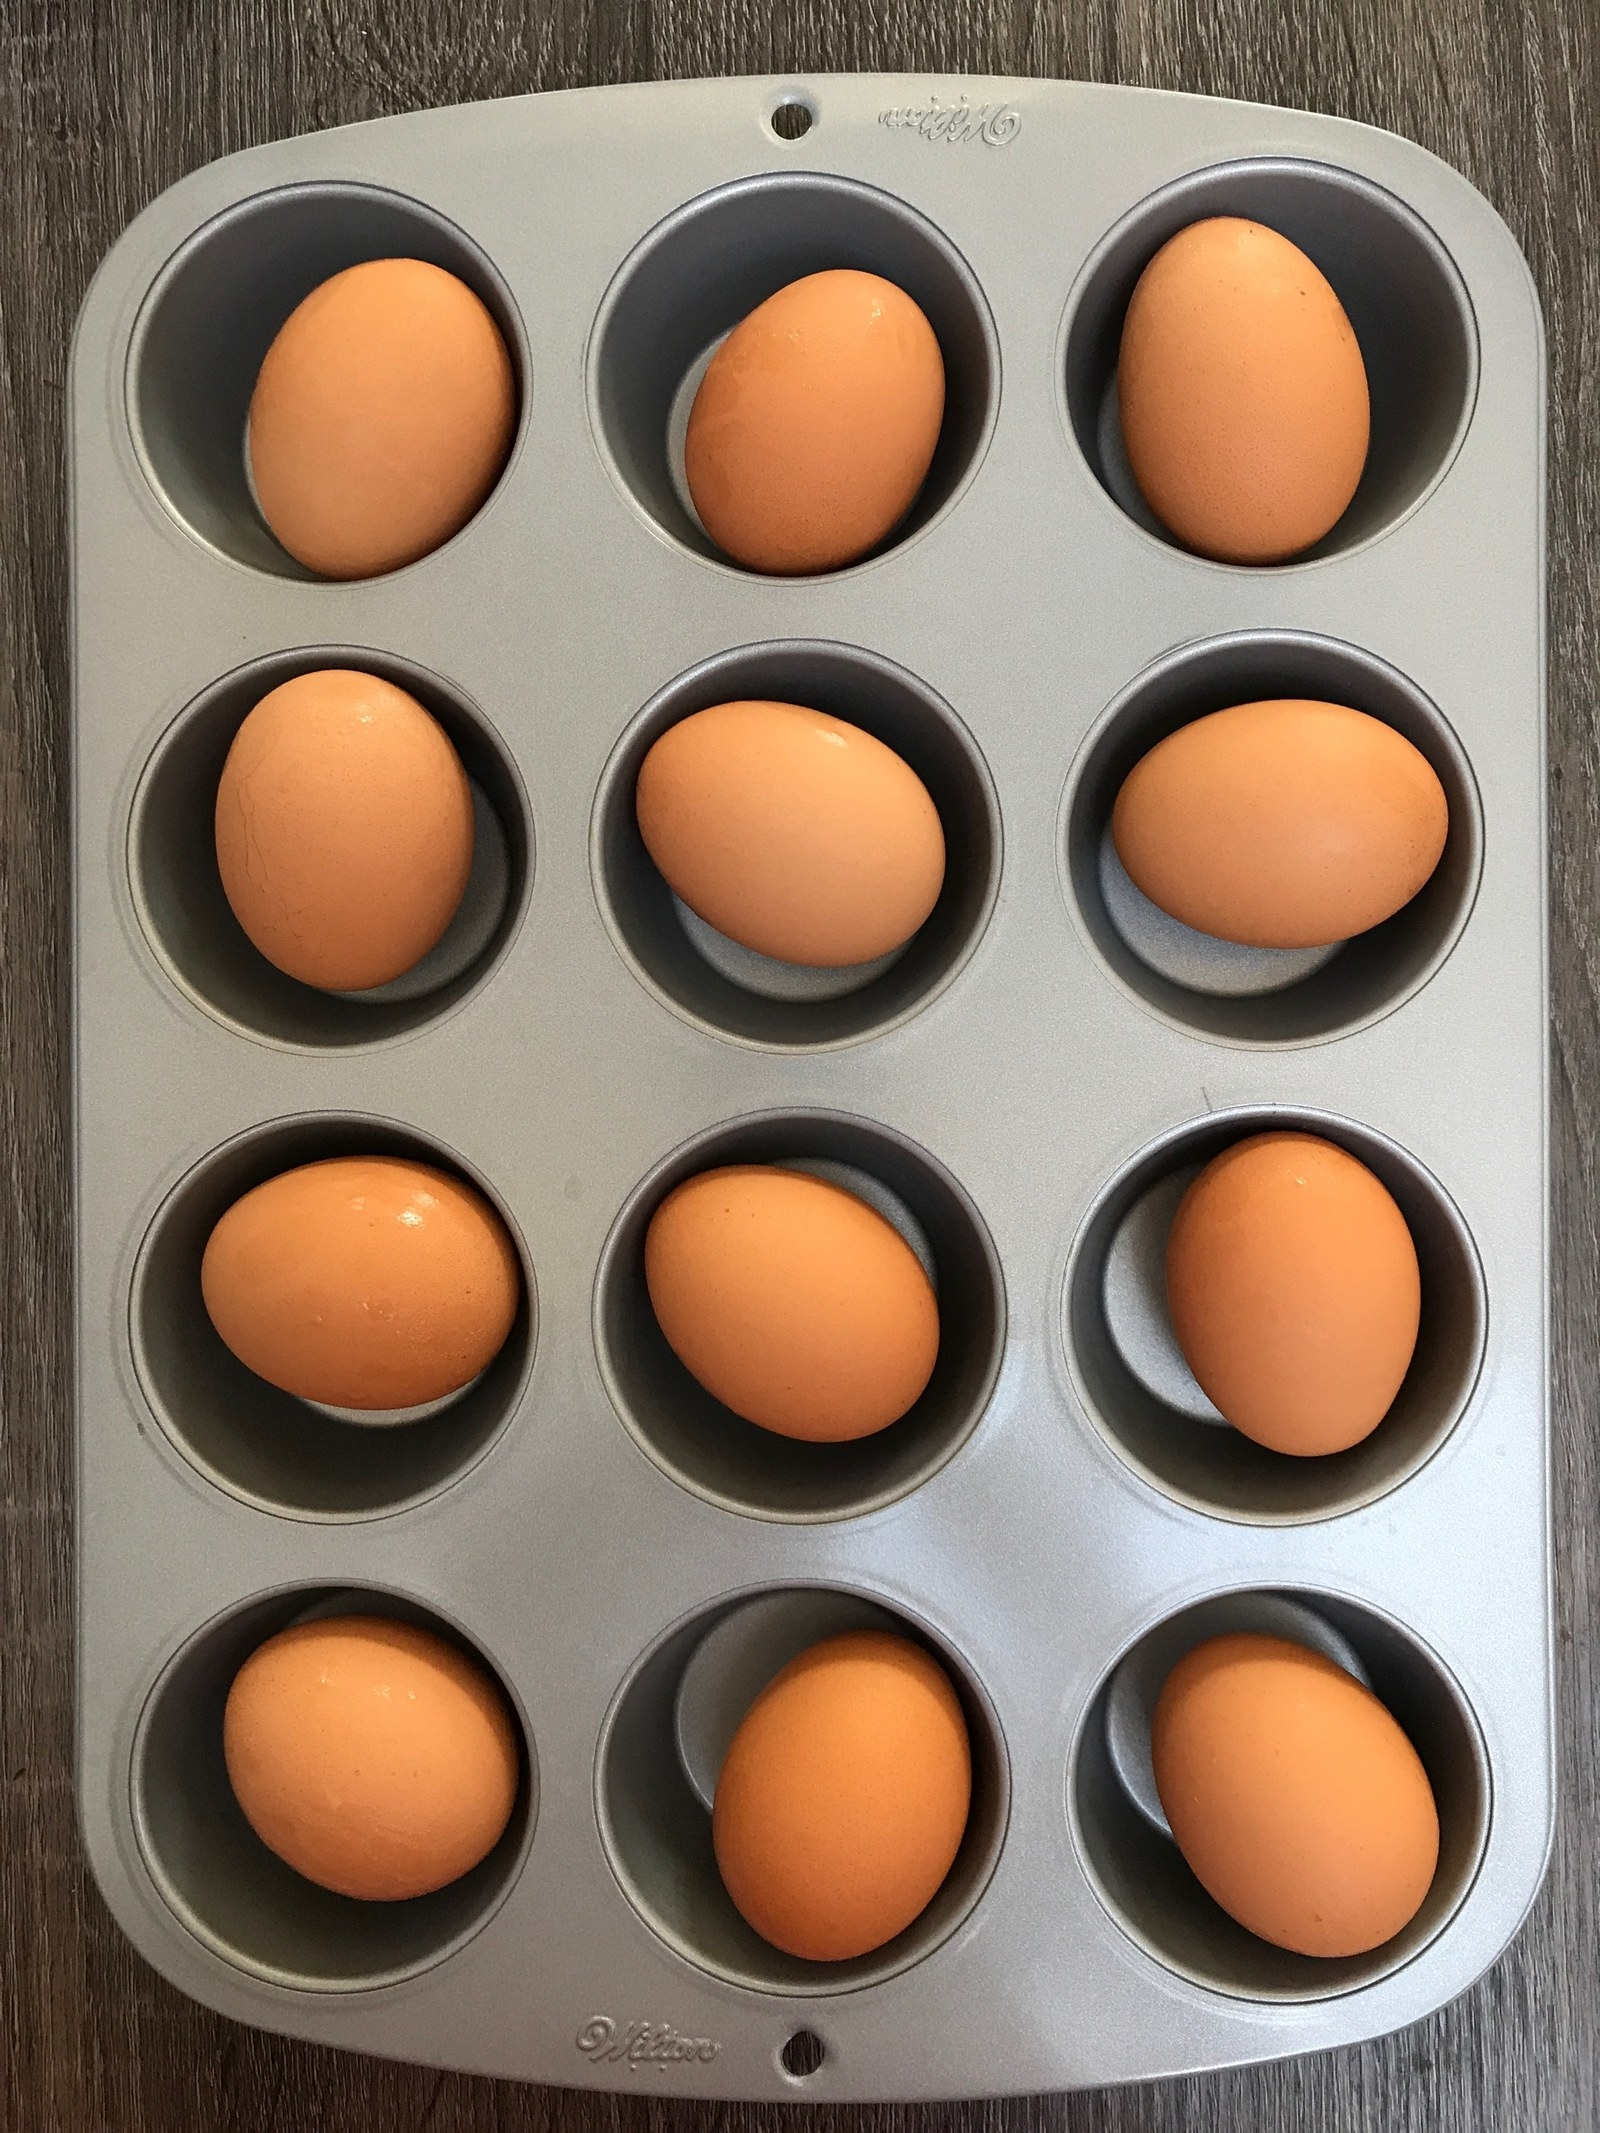 13 Egg Hacks We Swear By Because We've Tried Them